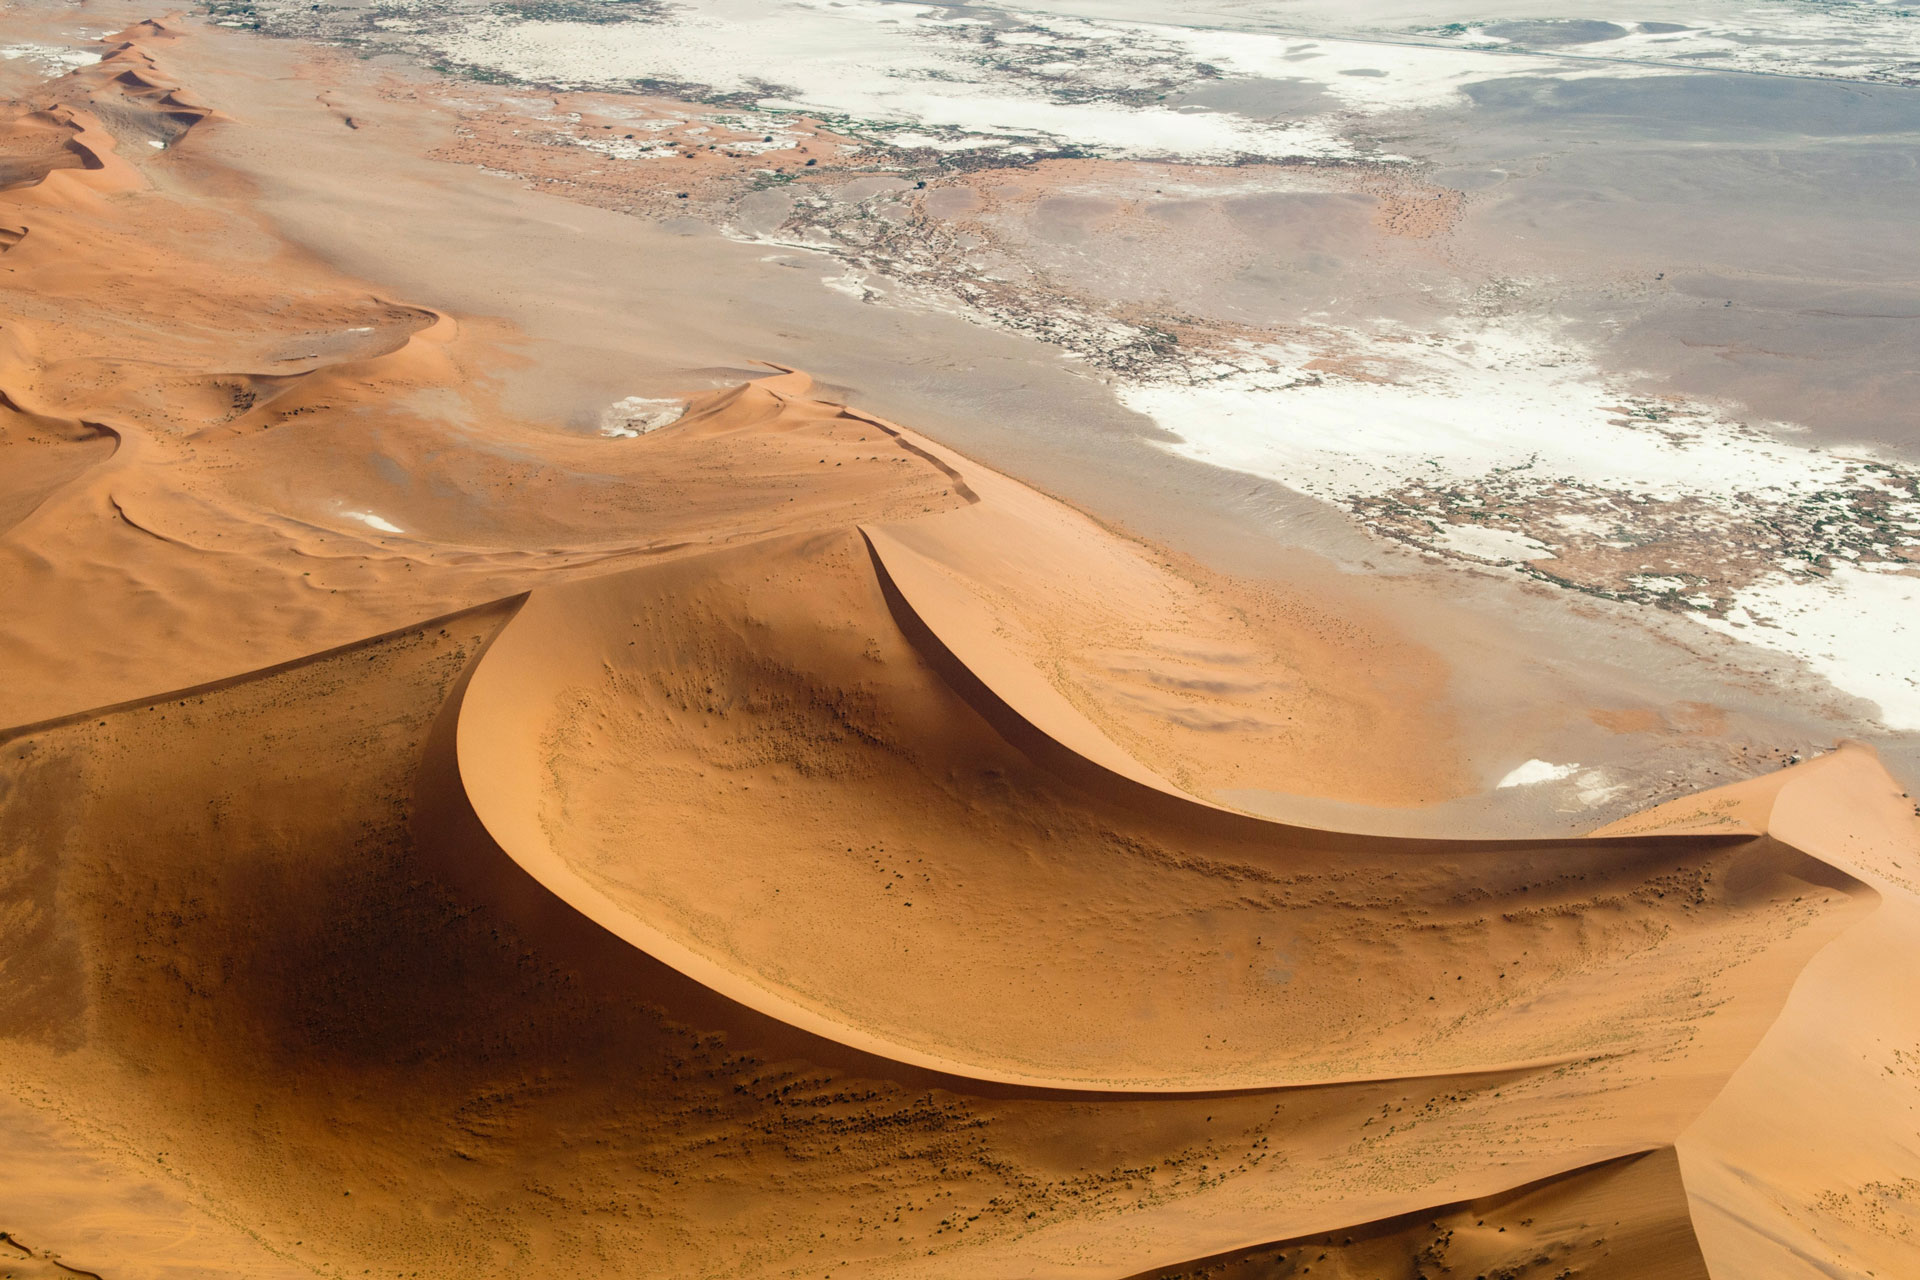 Where is this Namibian desert?